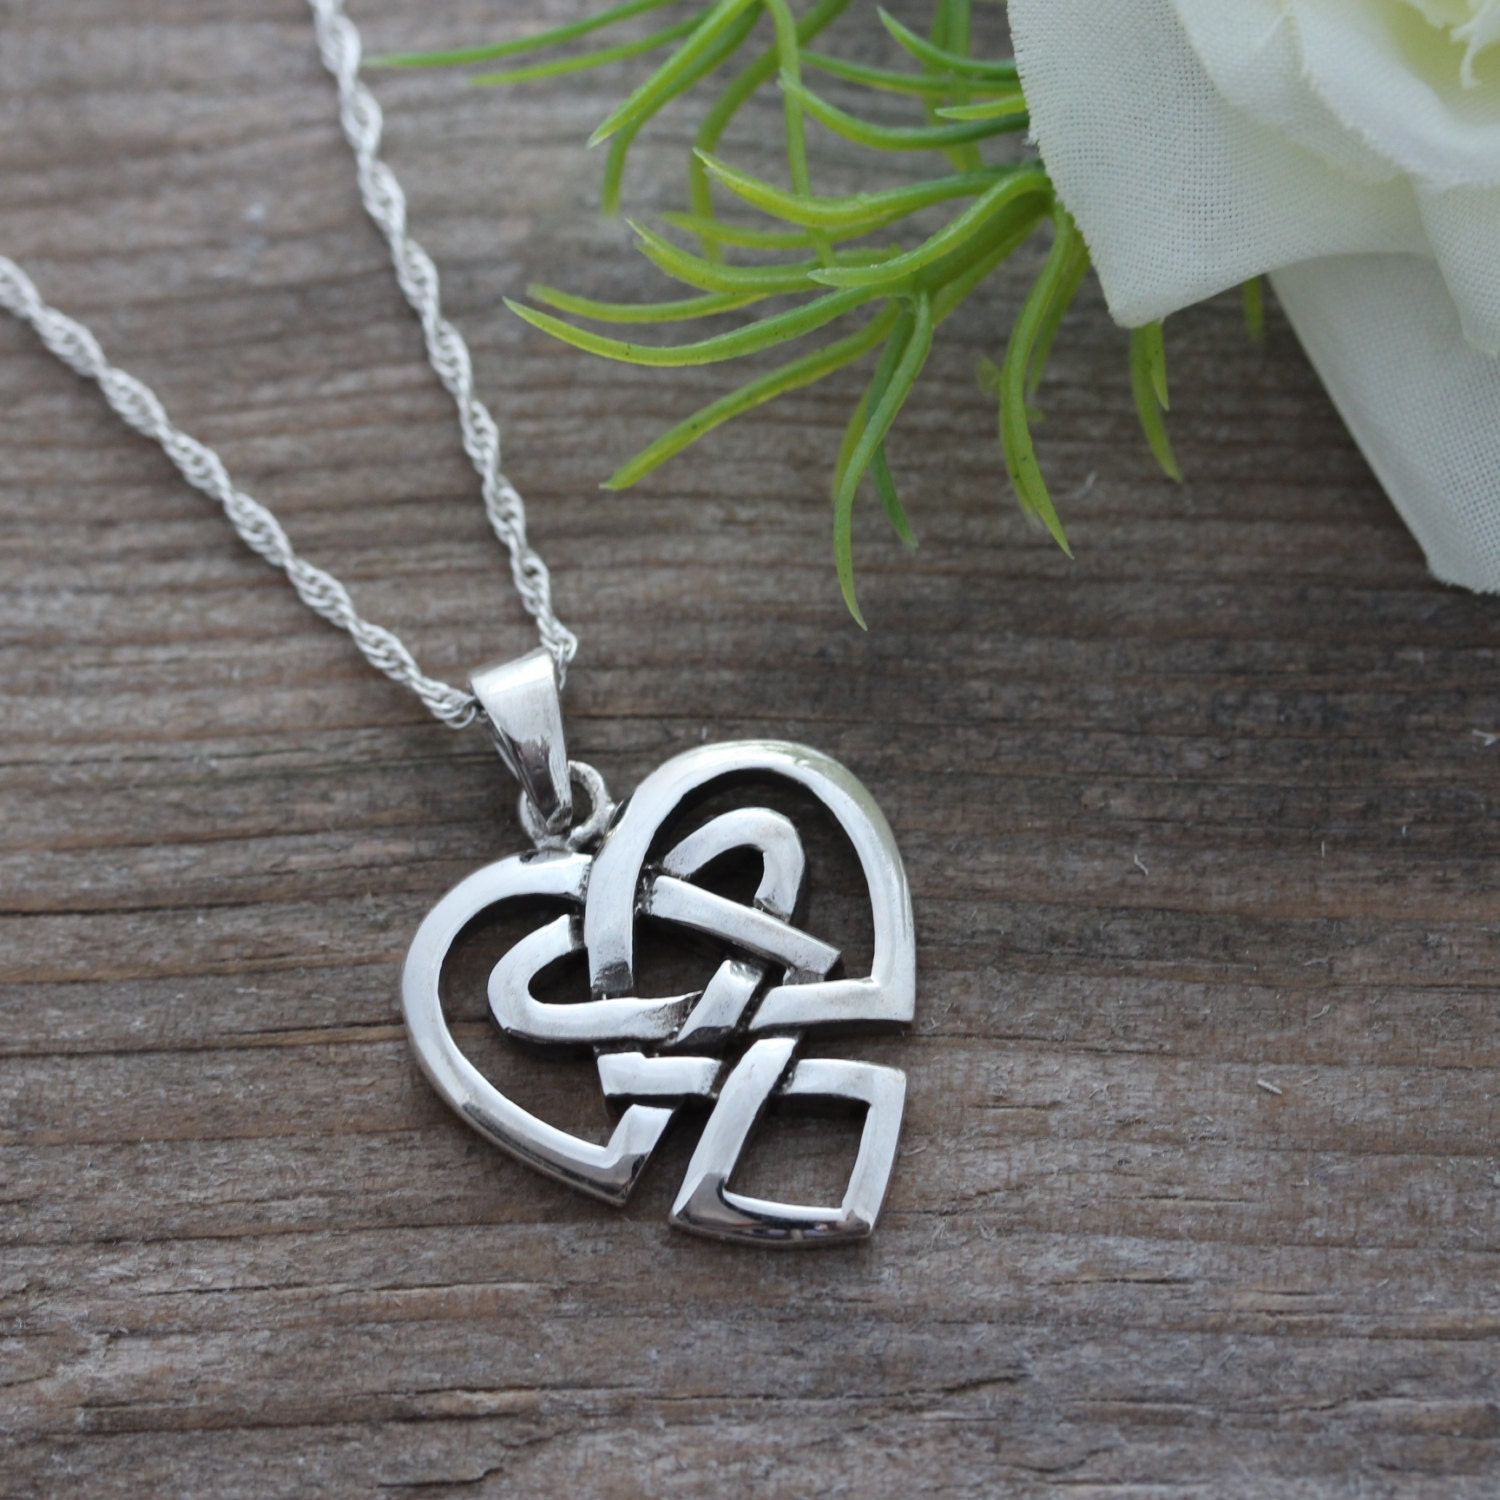 irish jewelry sterling silver celtic heart anniversary. Black Bedroom Furniture Sets. Home Design Ideas